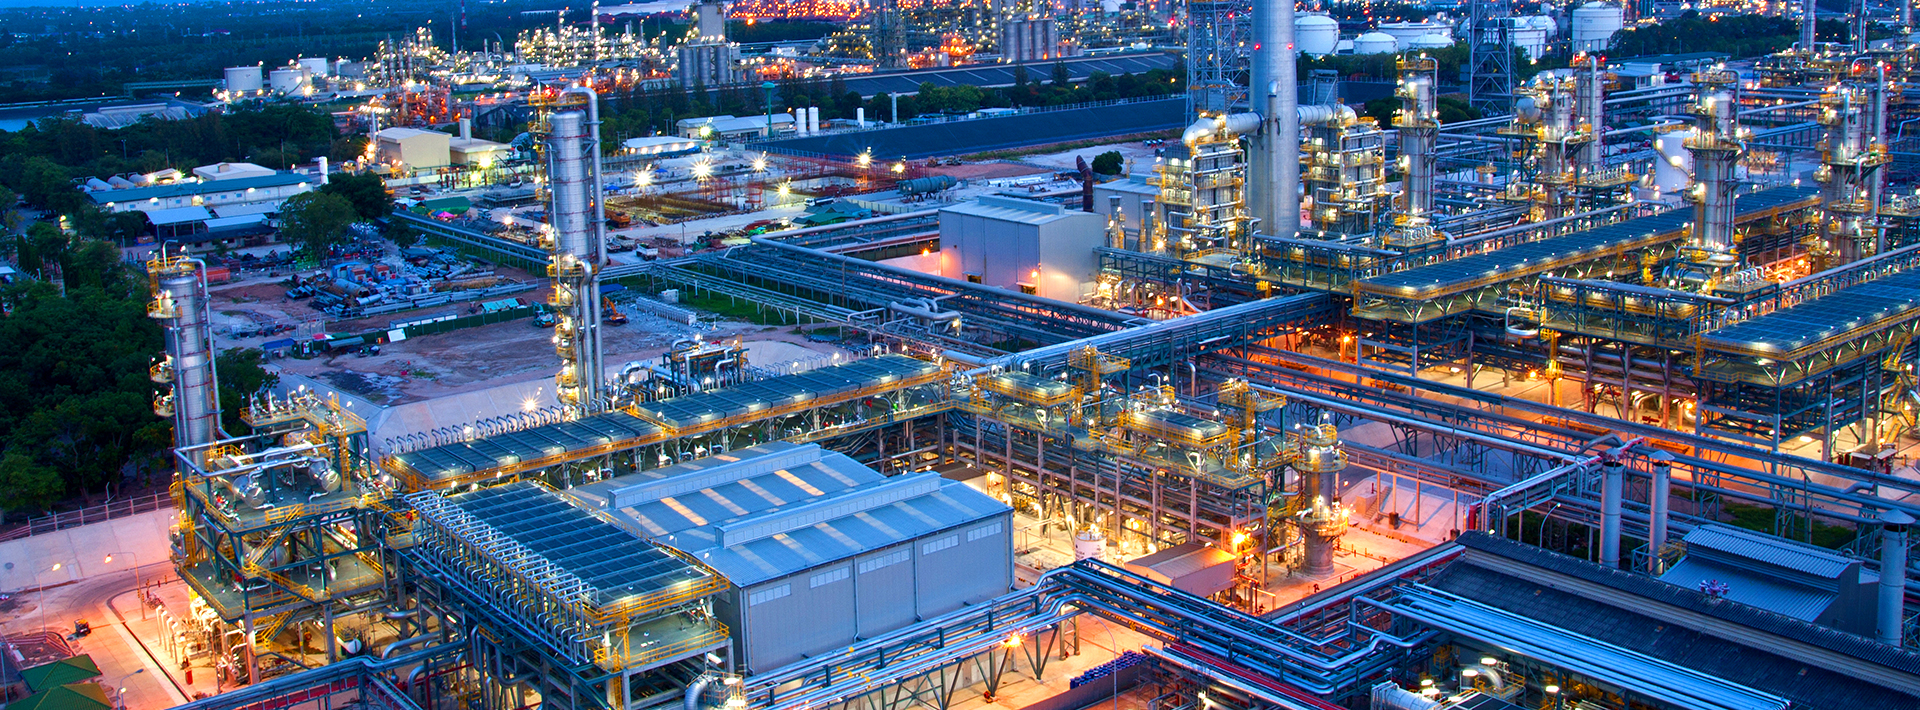 Main Automation Contractor for Integrated Control and Safety System and Monitoring System for Gas processing facility